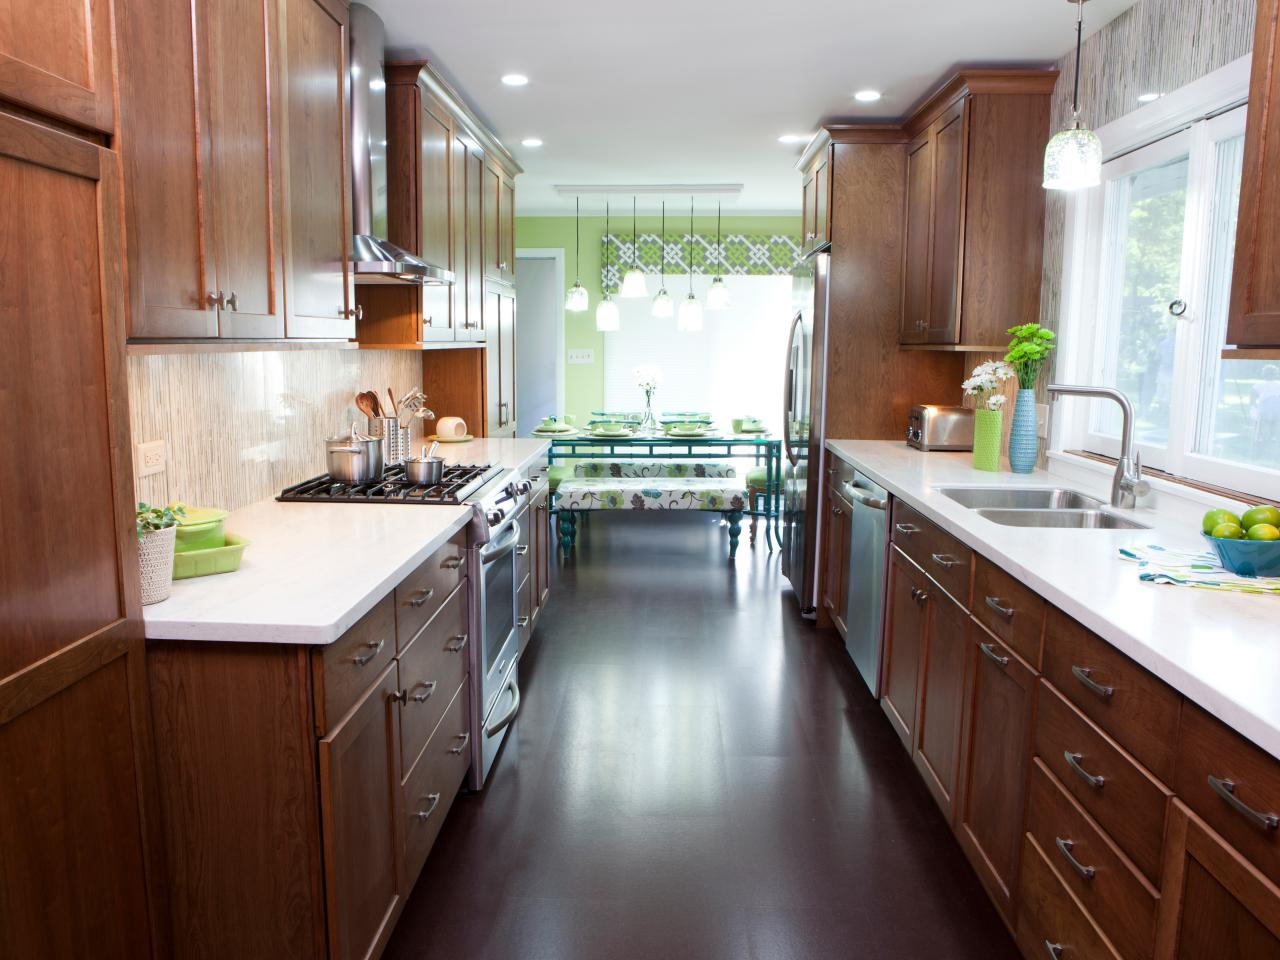 Opening A Galley Kitchen Up Small Galley Kitchen Design Pictures & Ideas From Hgtv  Hgtv